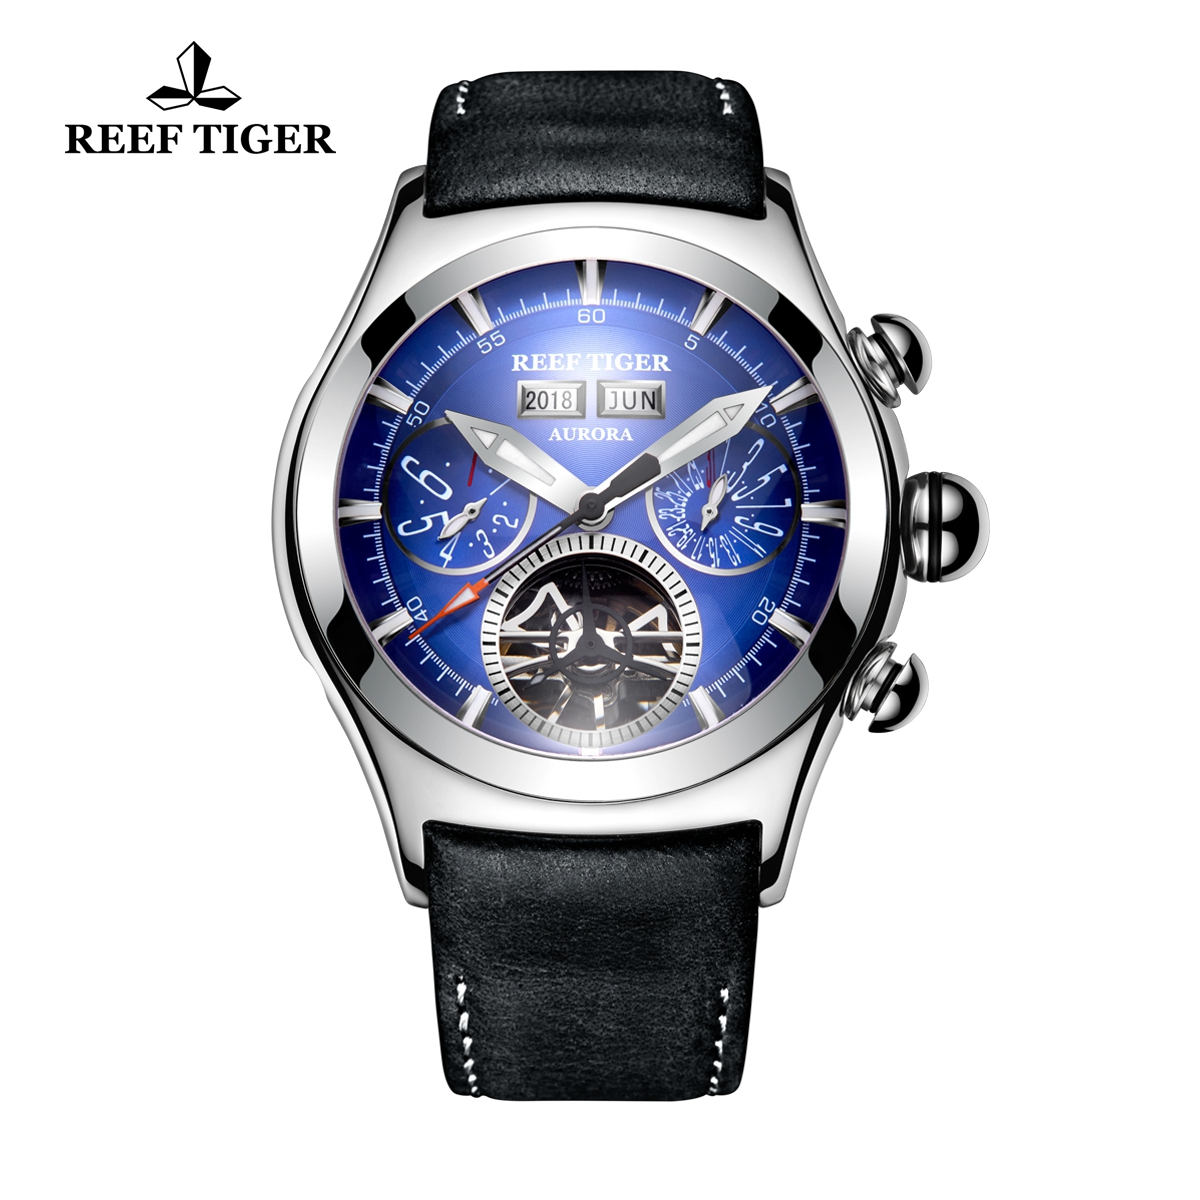 Reef Tiger Air Bubble II Men's Sport Fashion Steel Case Watches Leather Strap Automatic Watch RGA7503-YLB